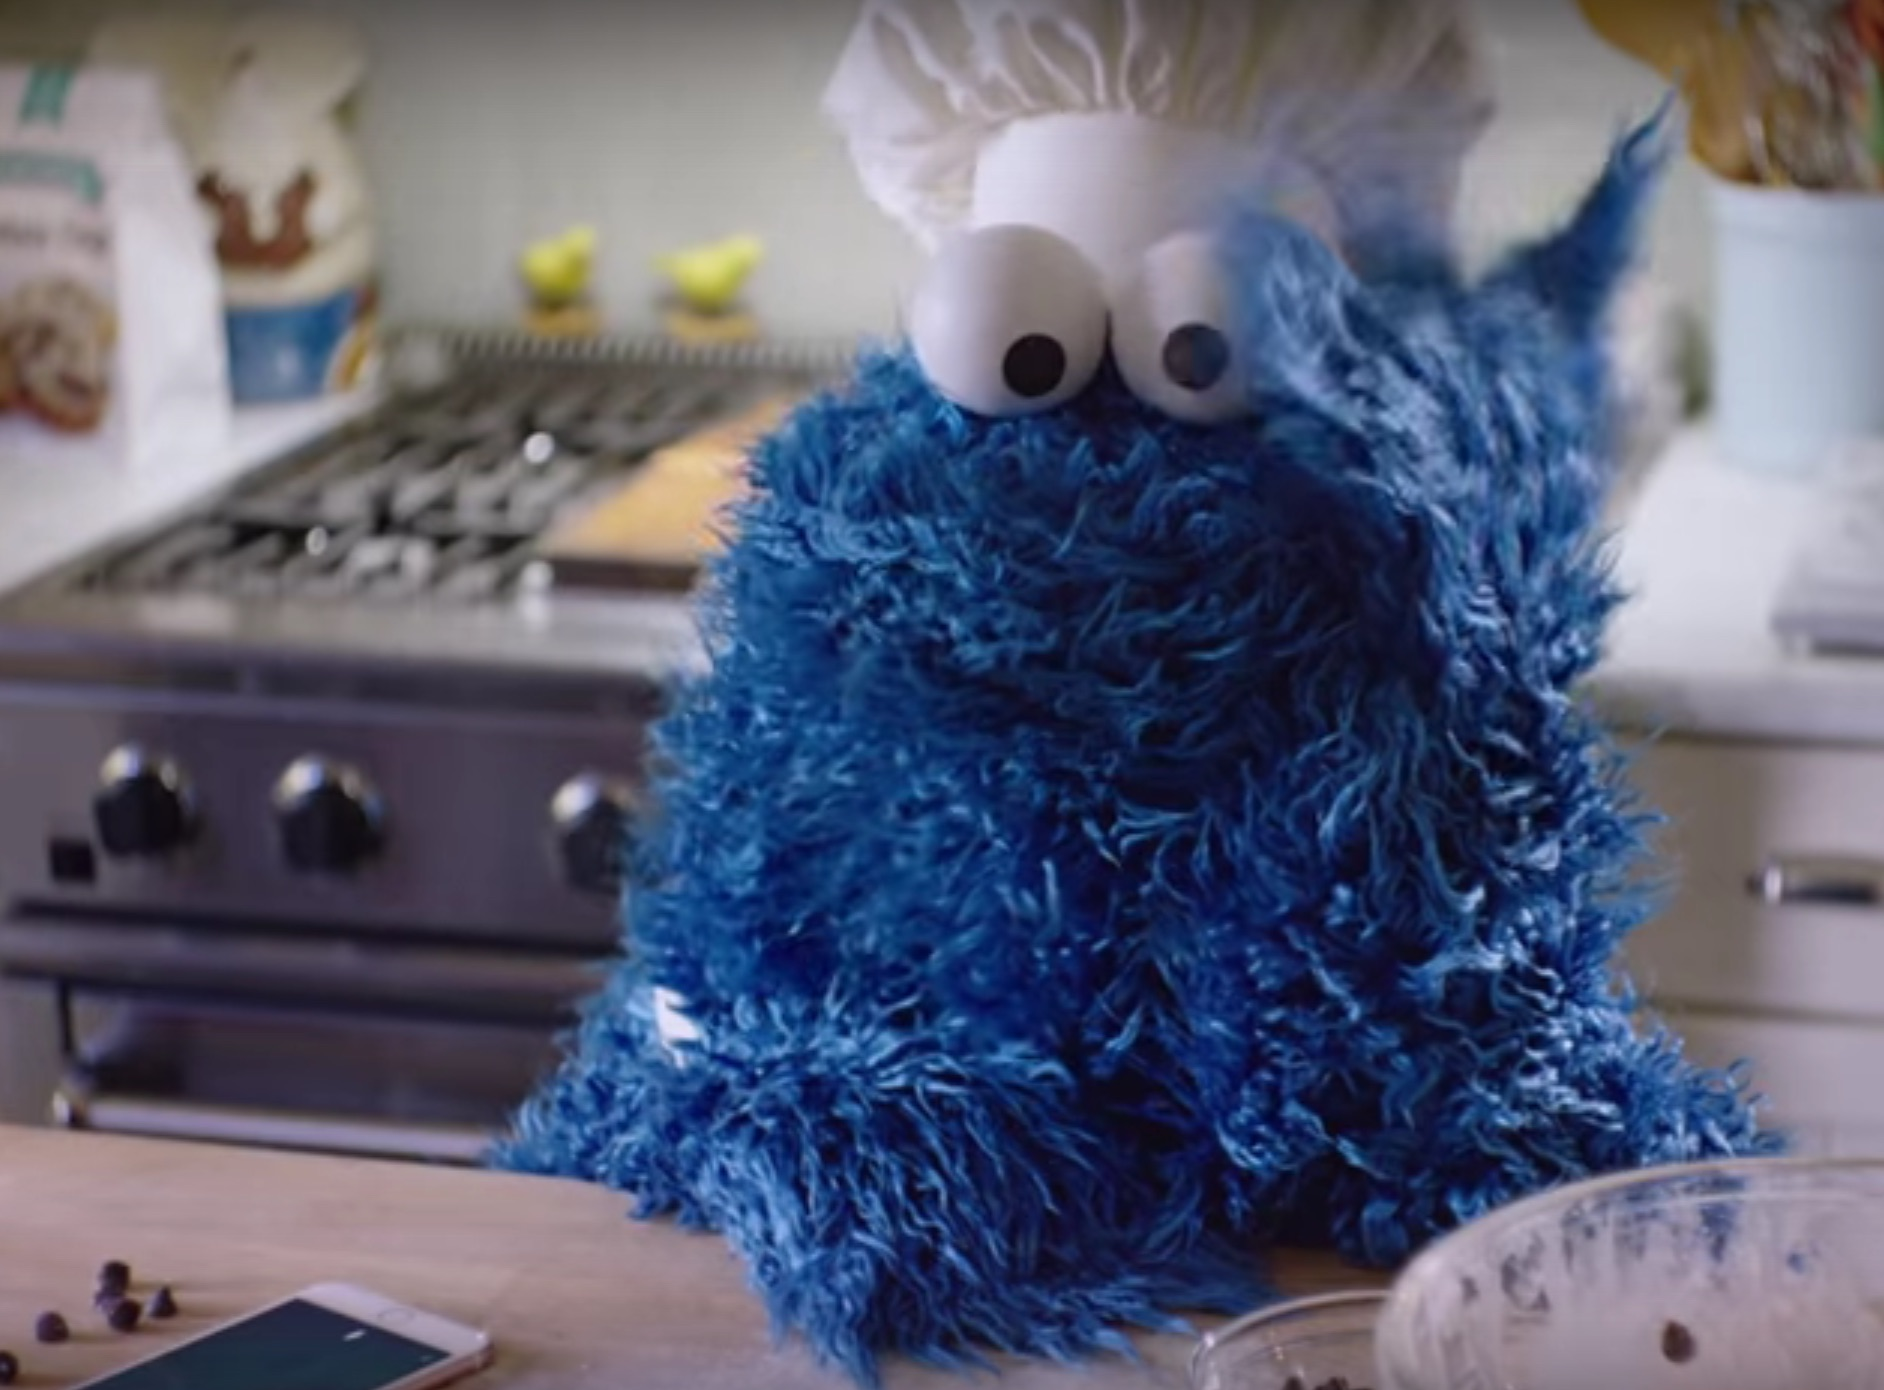 Cookie Monster shows us everything we can do with Siri (and cookies)